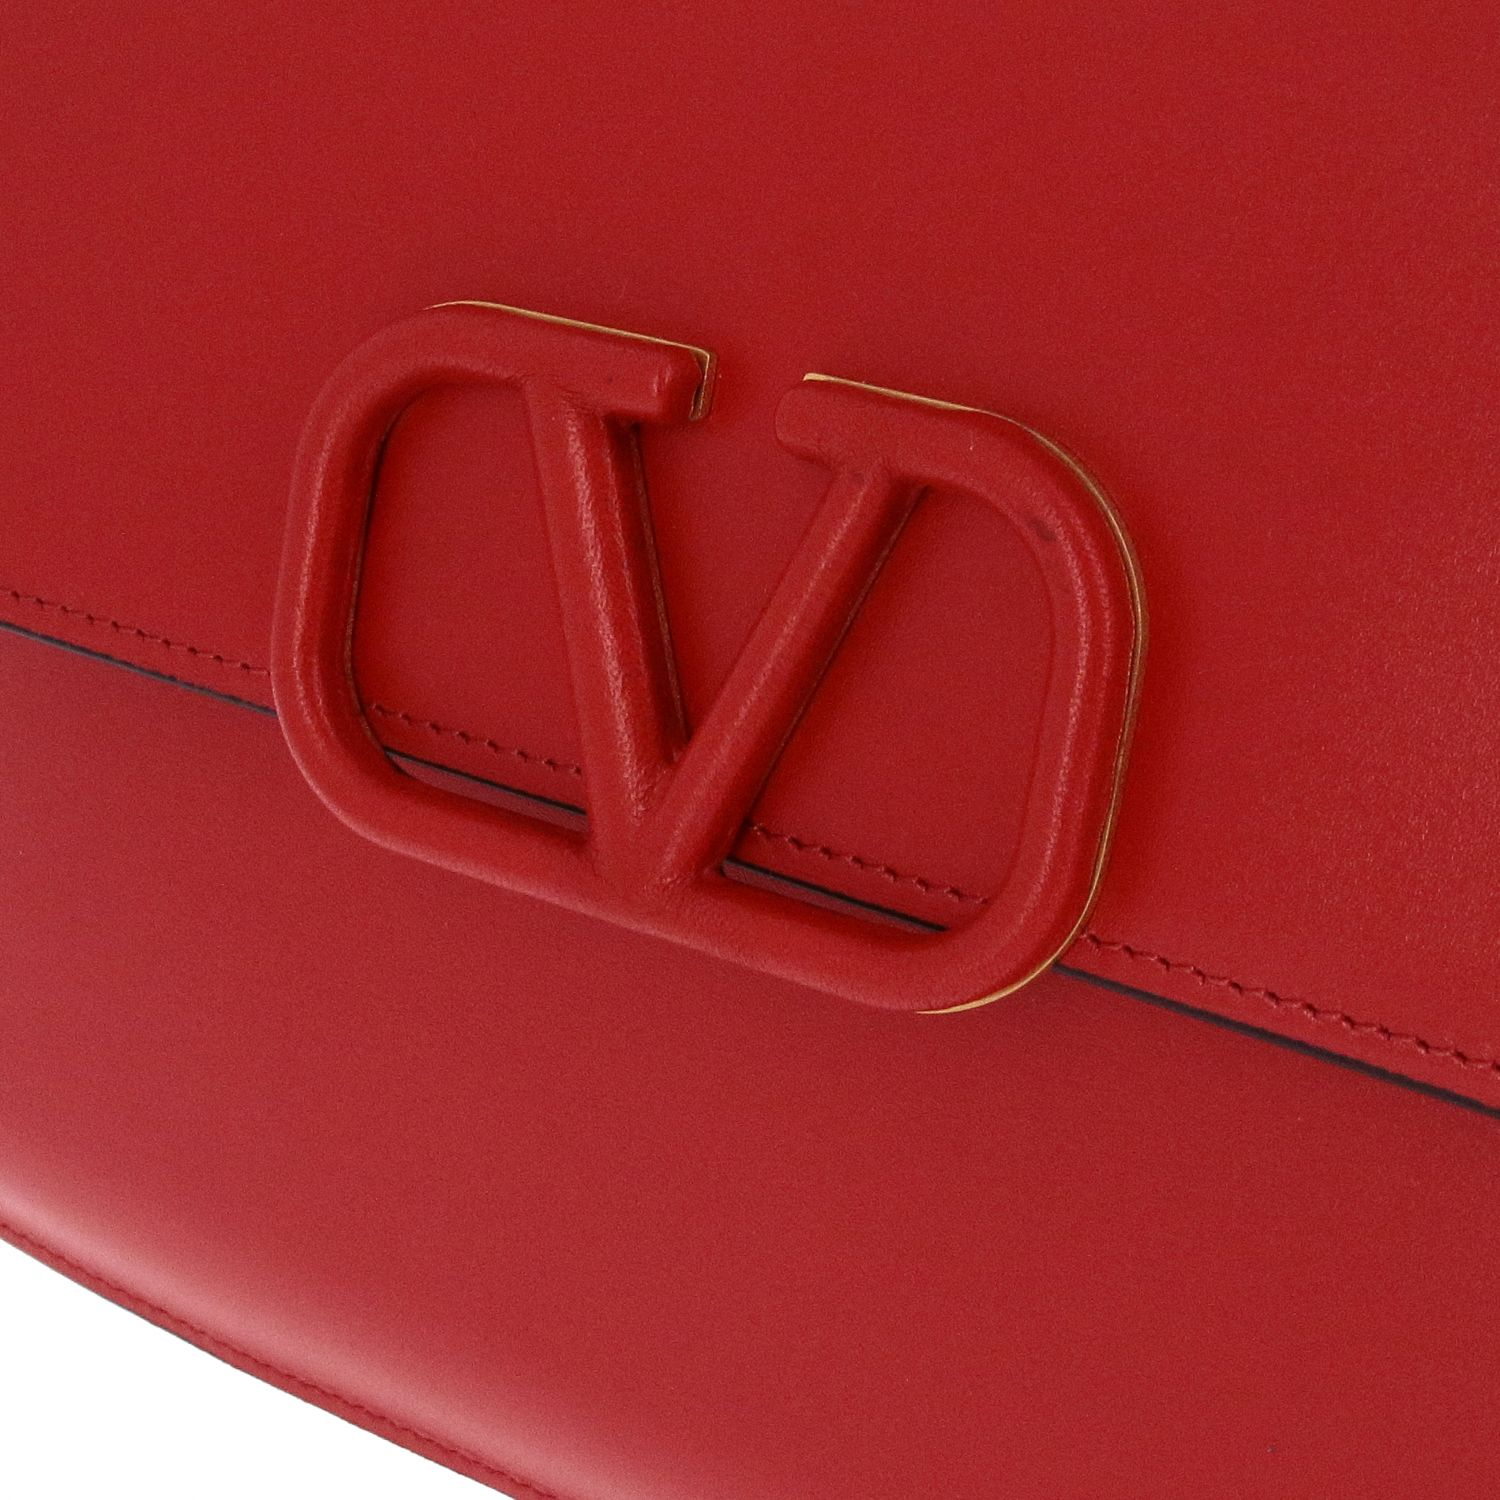 Clutch Valentino Garavani: Mini bag women Valentino Garavani red 4